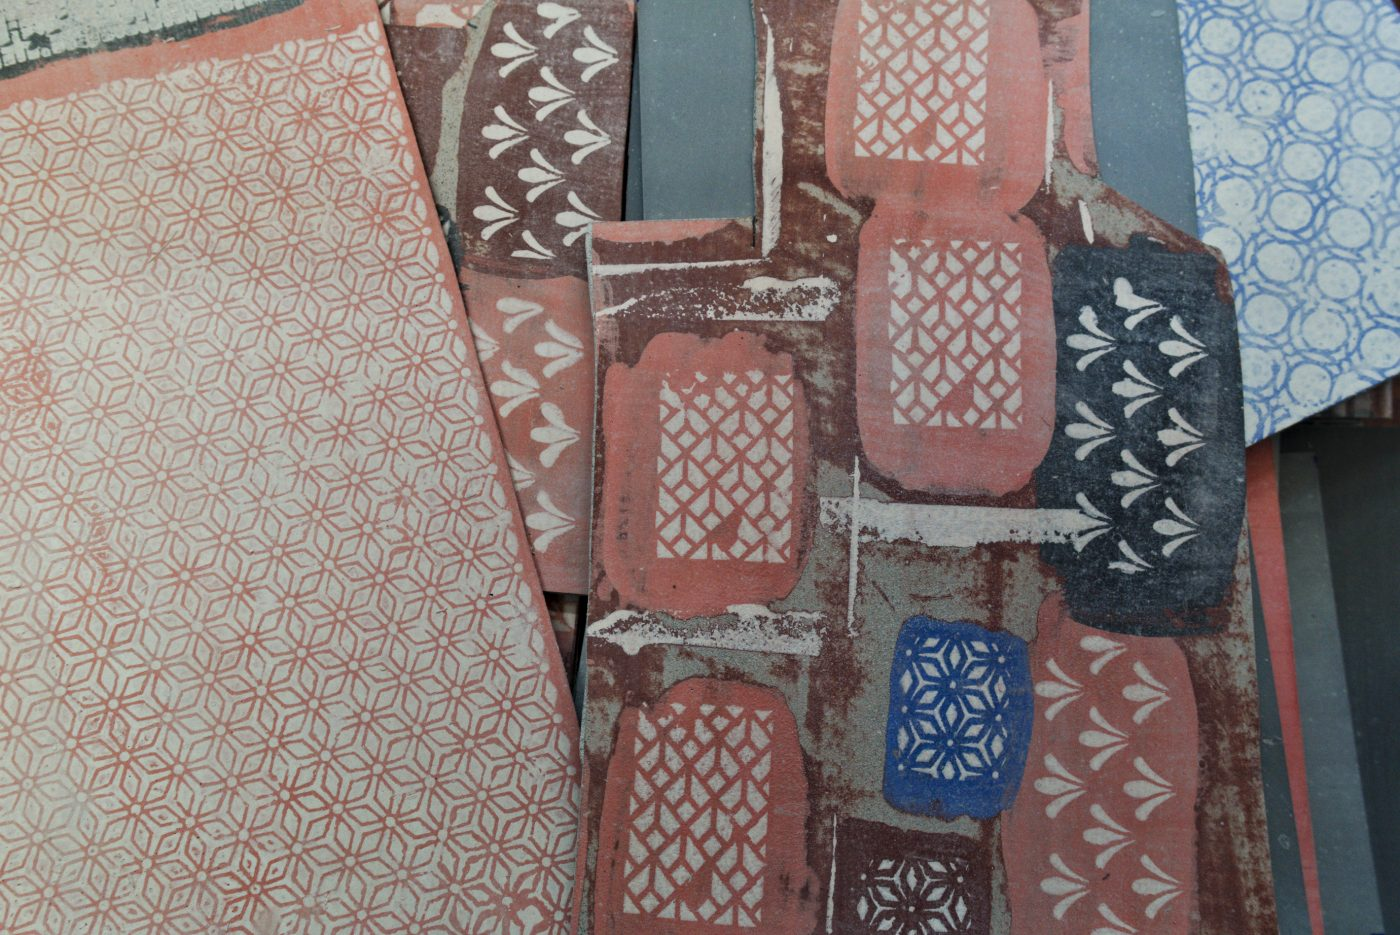 Large and small sheets of coloured porcelain card with white geometric patterns on top